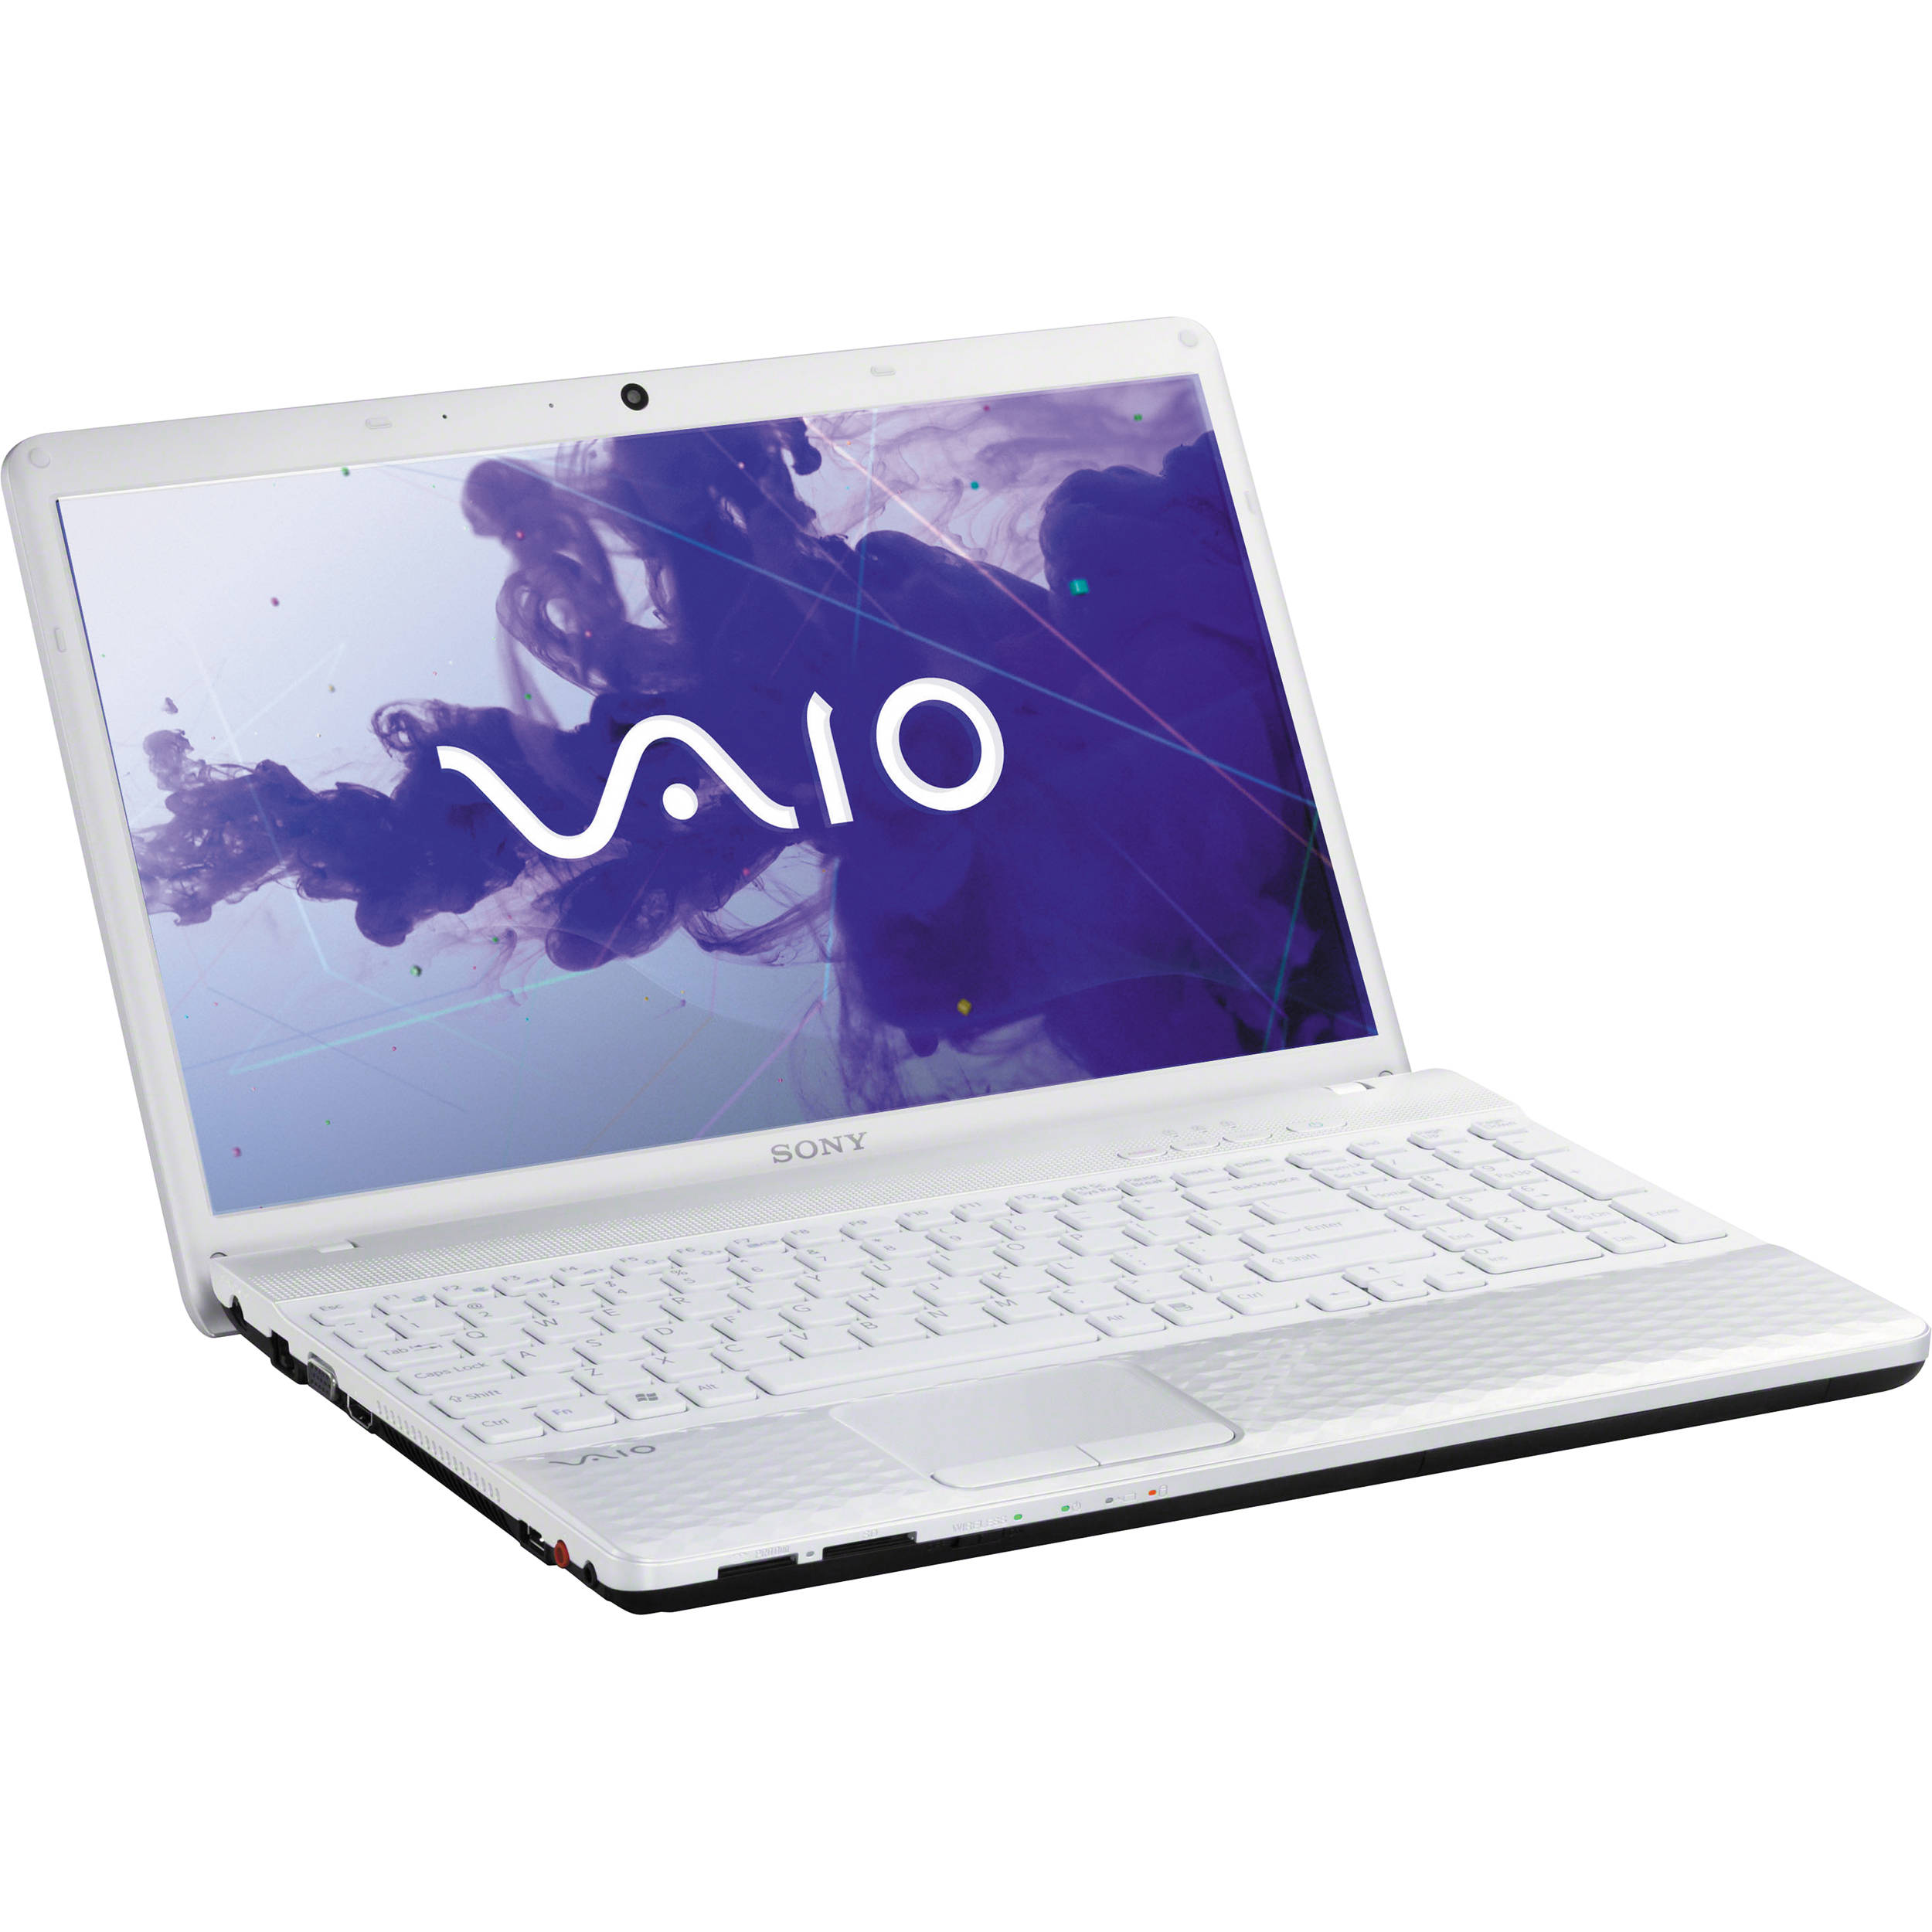 SONY VAIO VPCEH2KFXB INTEL WIDI WINDOWS 8 X64 TREIBER